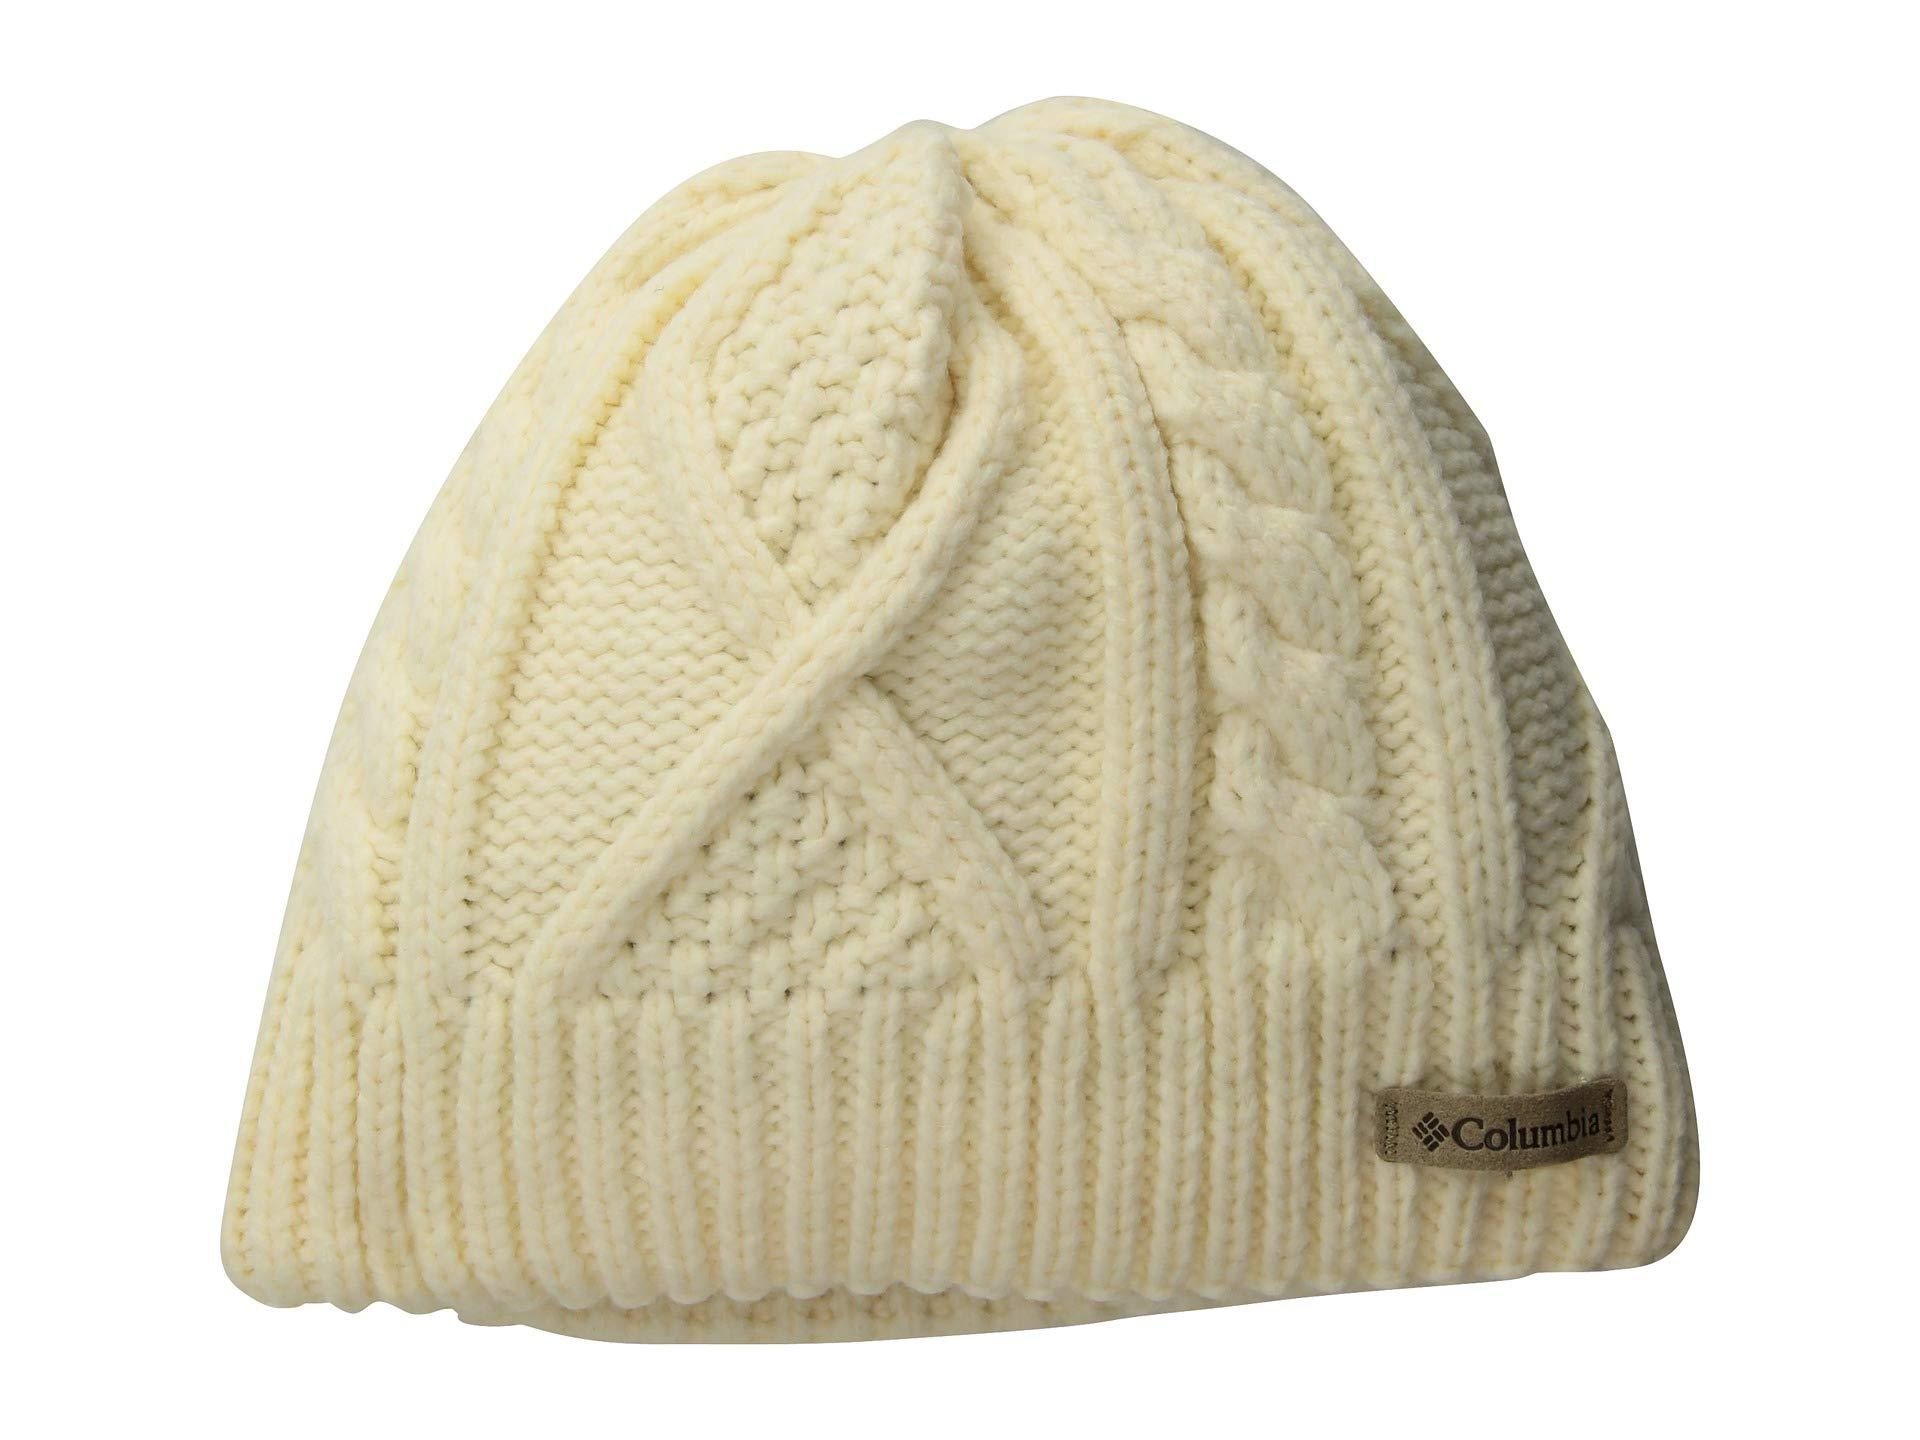 f232c0108b2b2 Lyst - Columbia Cabled Cutietm Beanie in Natural - Save ...